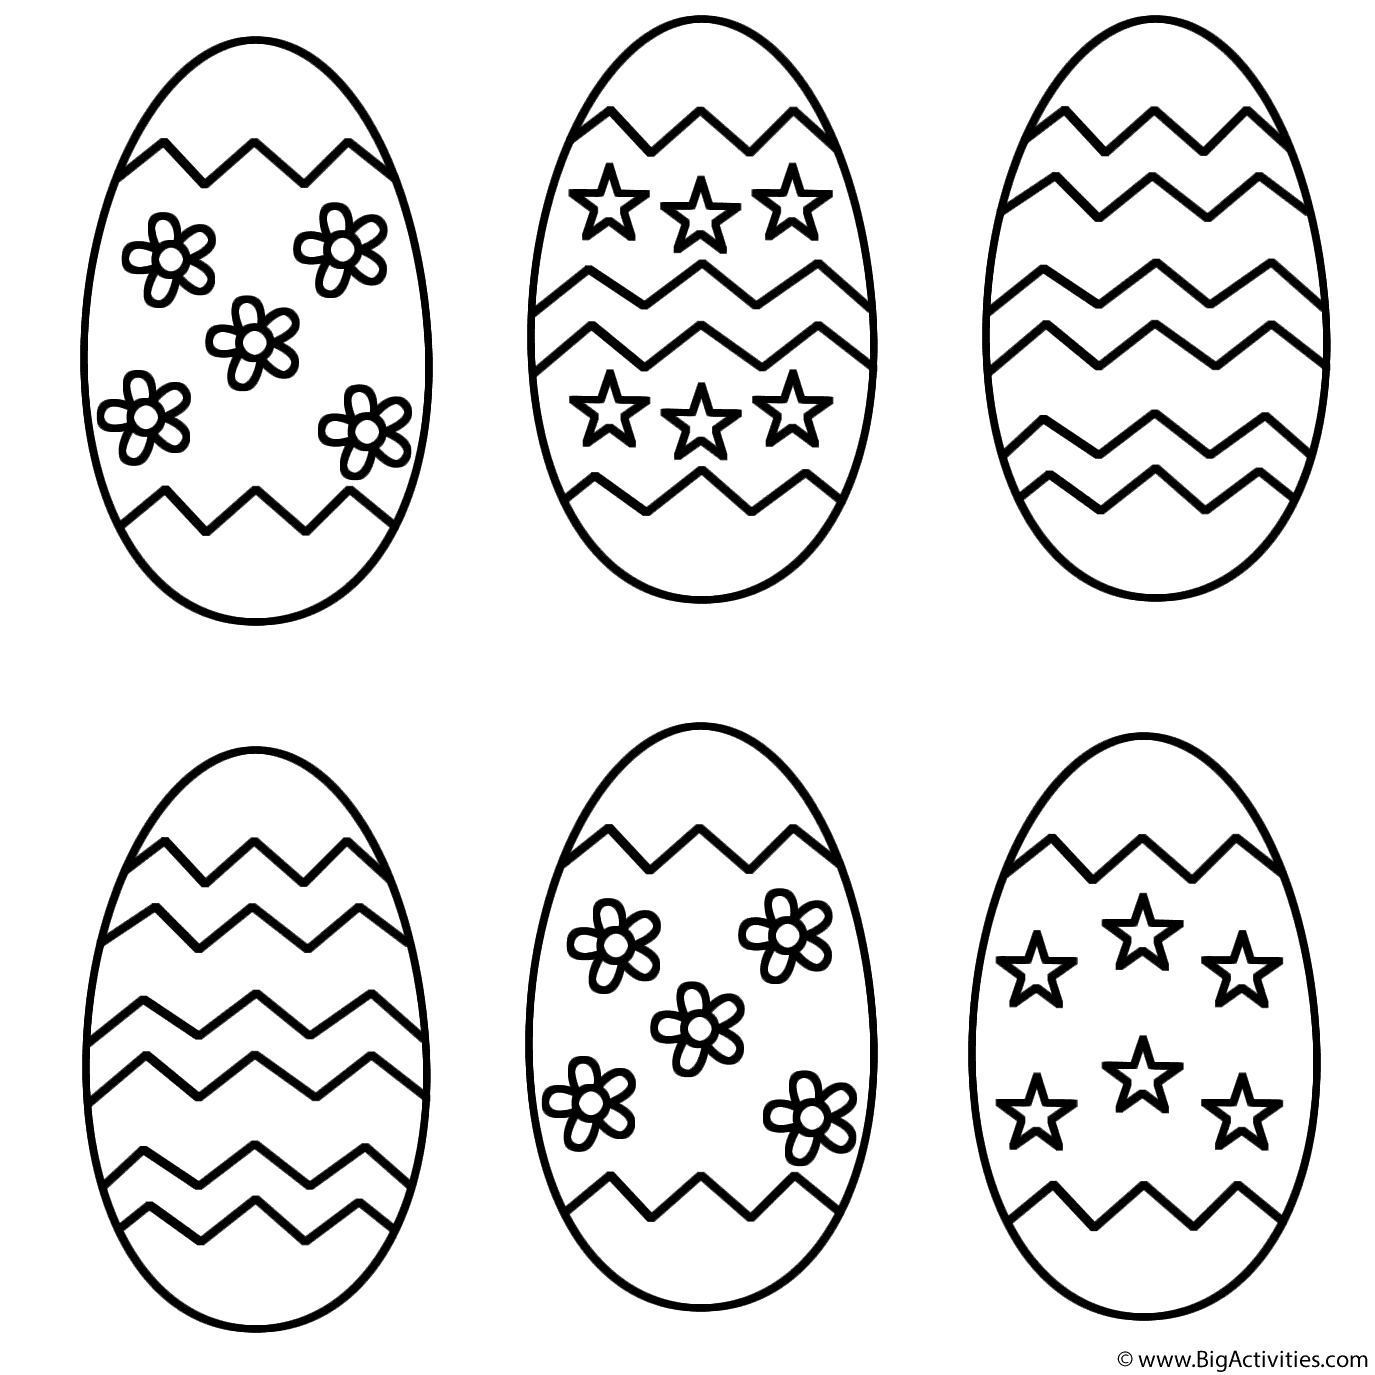 Six Easter Eggs - Coloring Page (Easter)